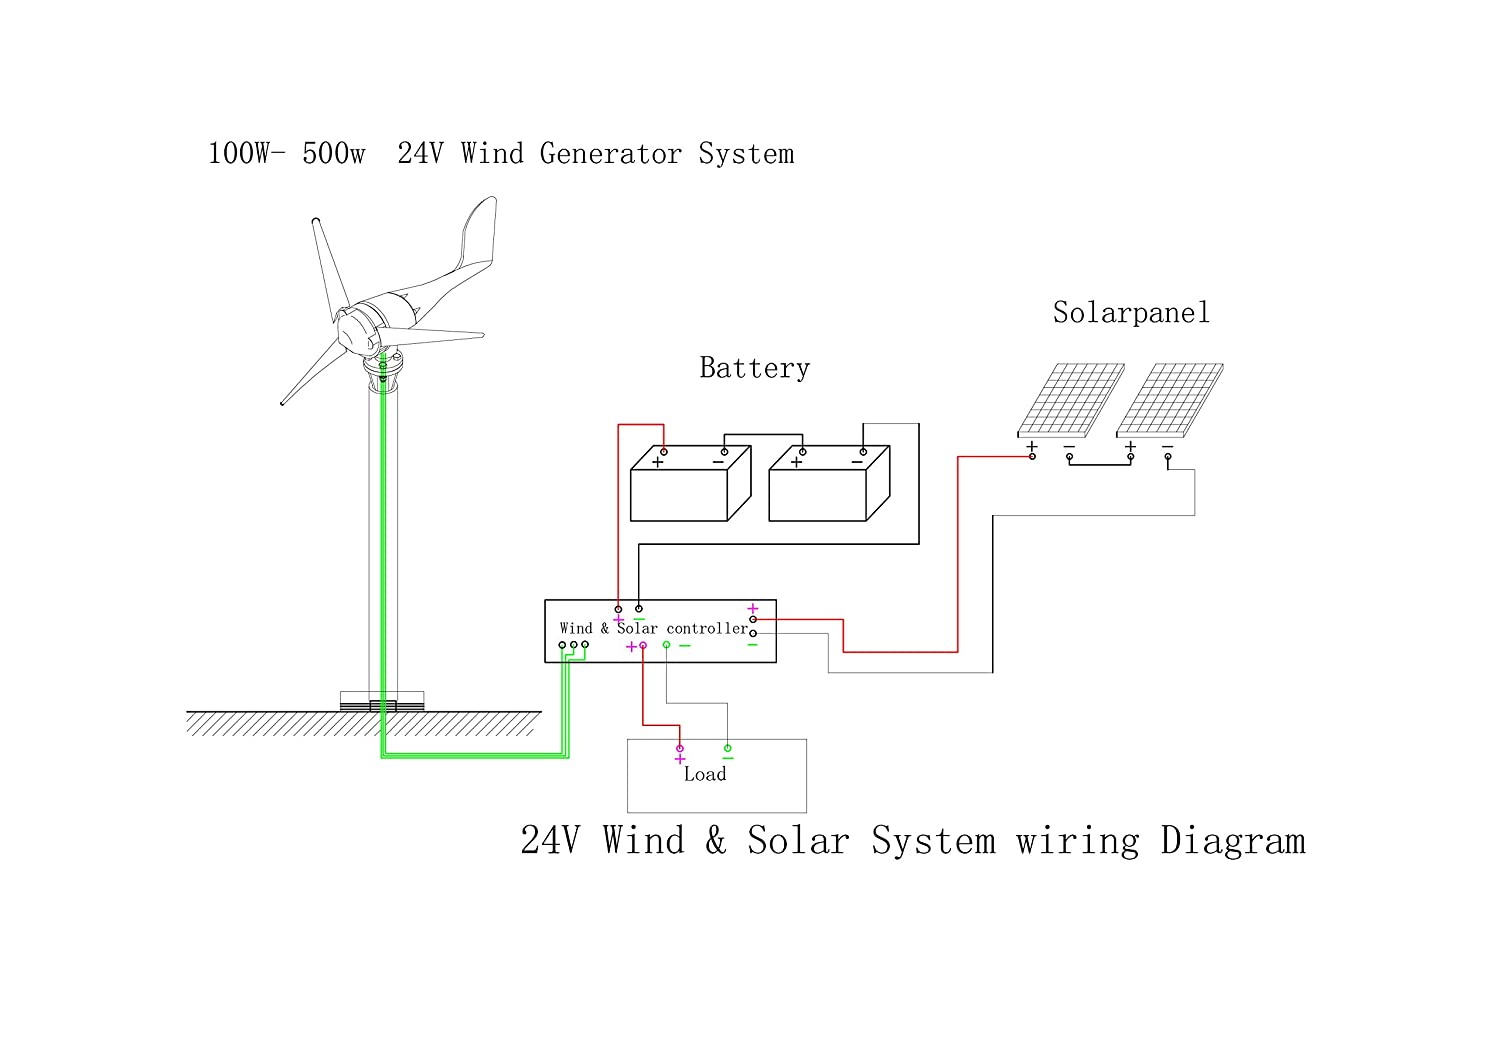 Wind Turbine Generator Vertical Axis Kit 300 500watt Wiring Schematic Dc12 24v Of 4 Blades For House Using Lighting And Industrial Energy Supplementation